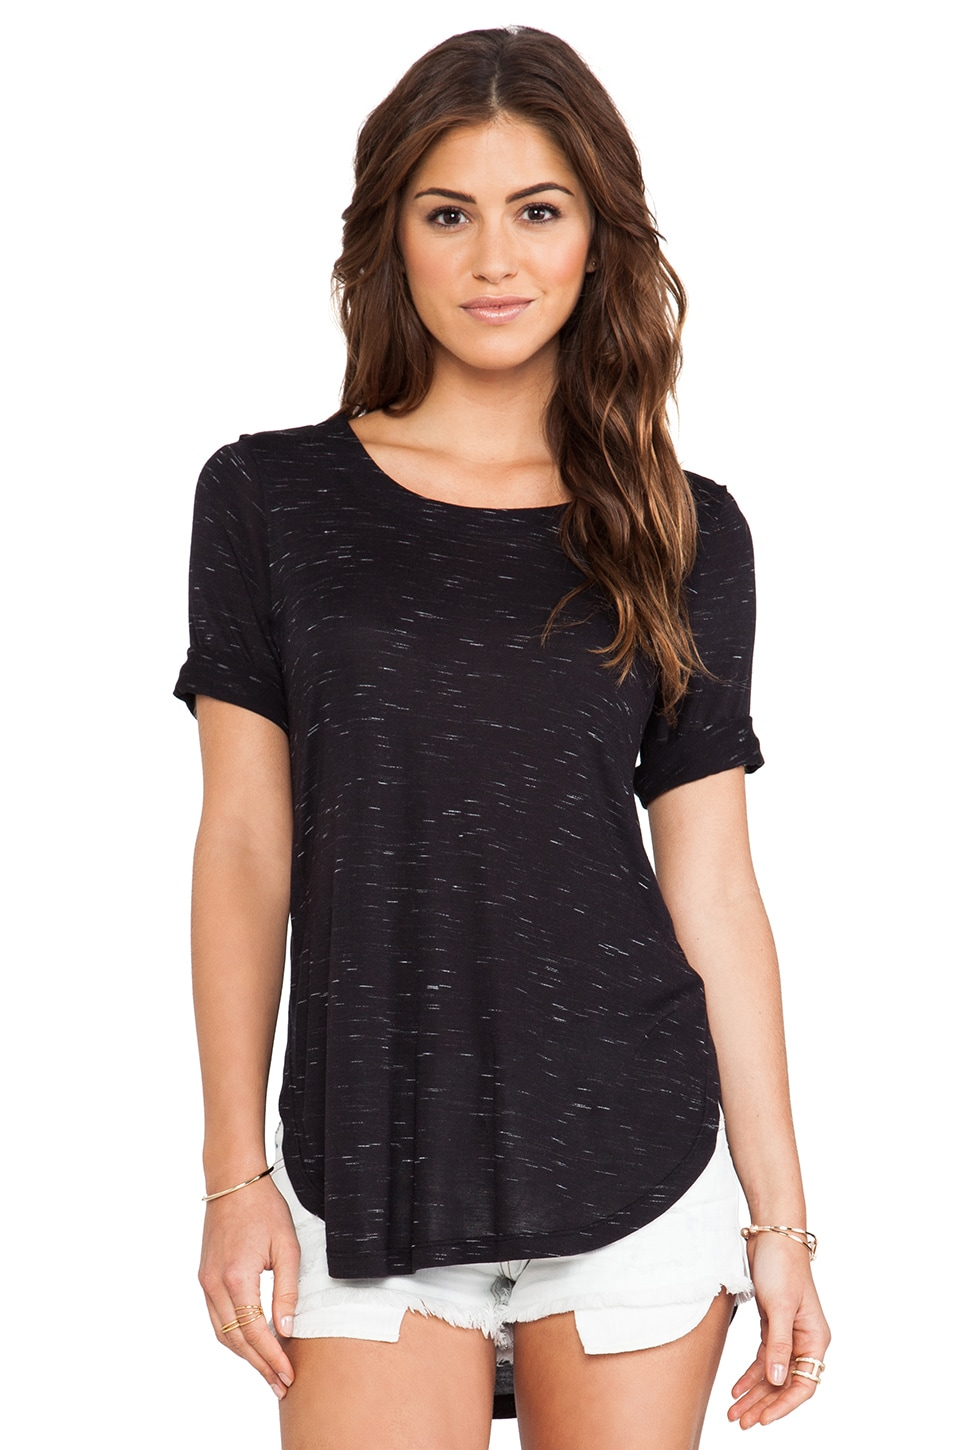 Splendid Tracer Melange Tee in Black